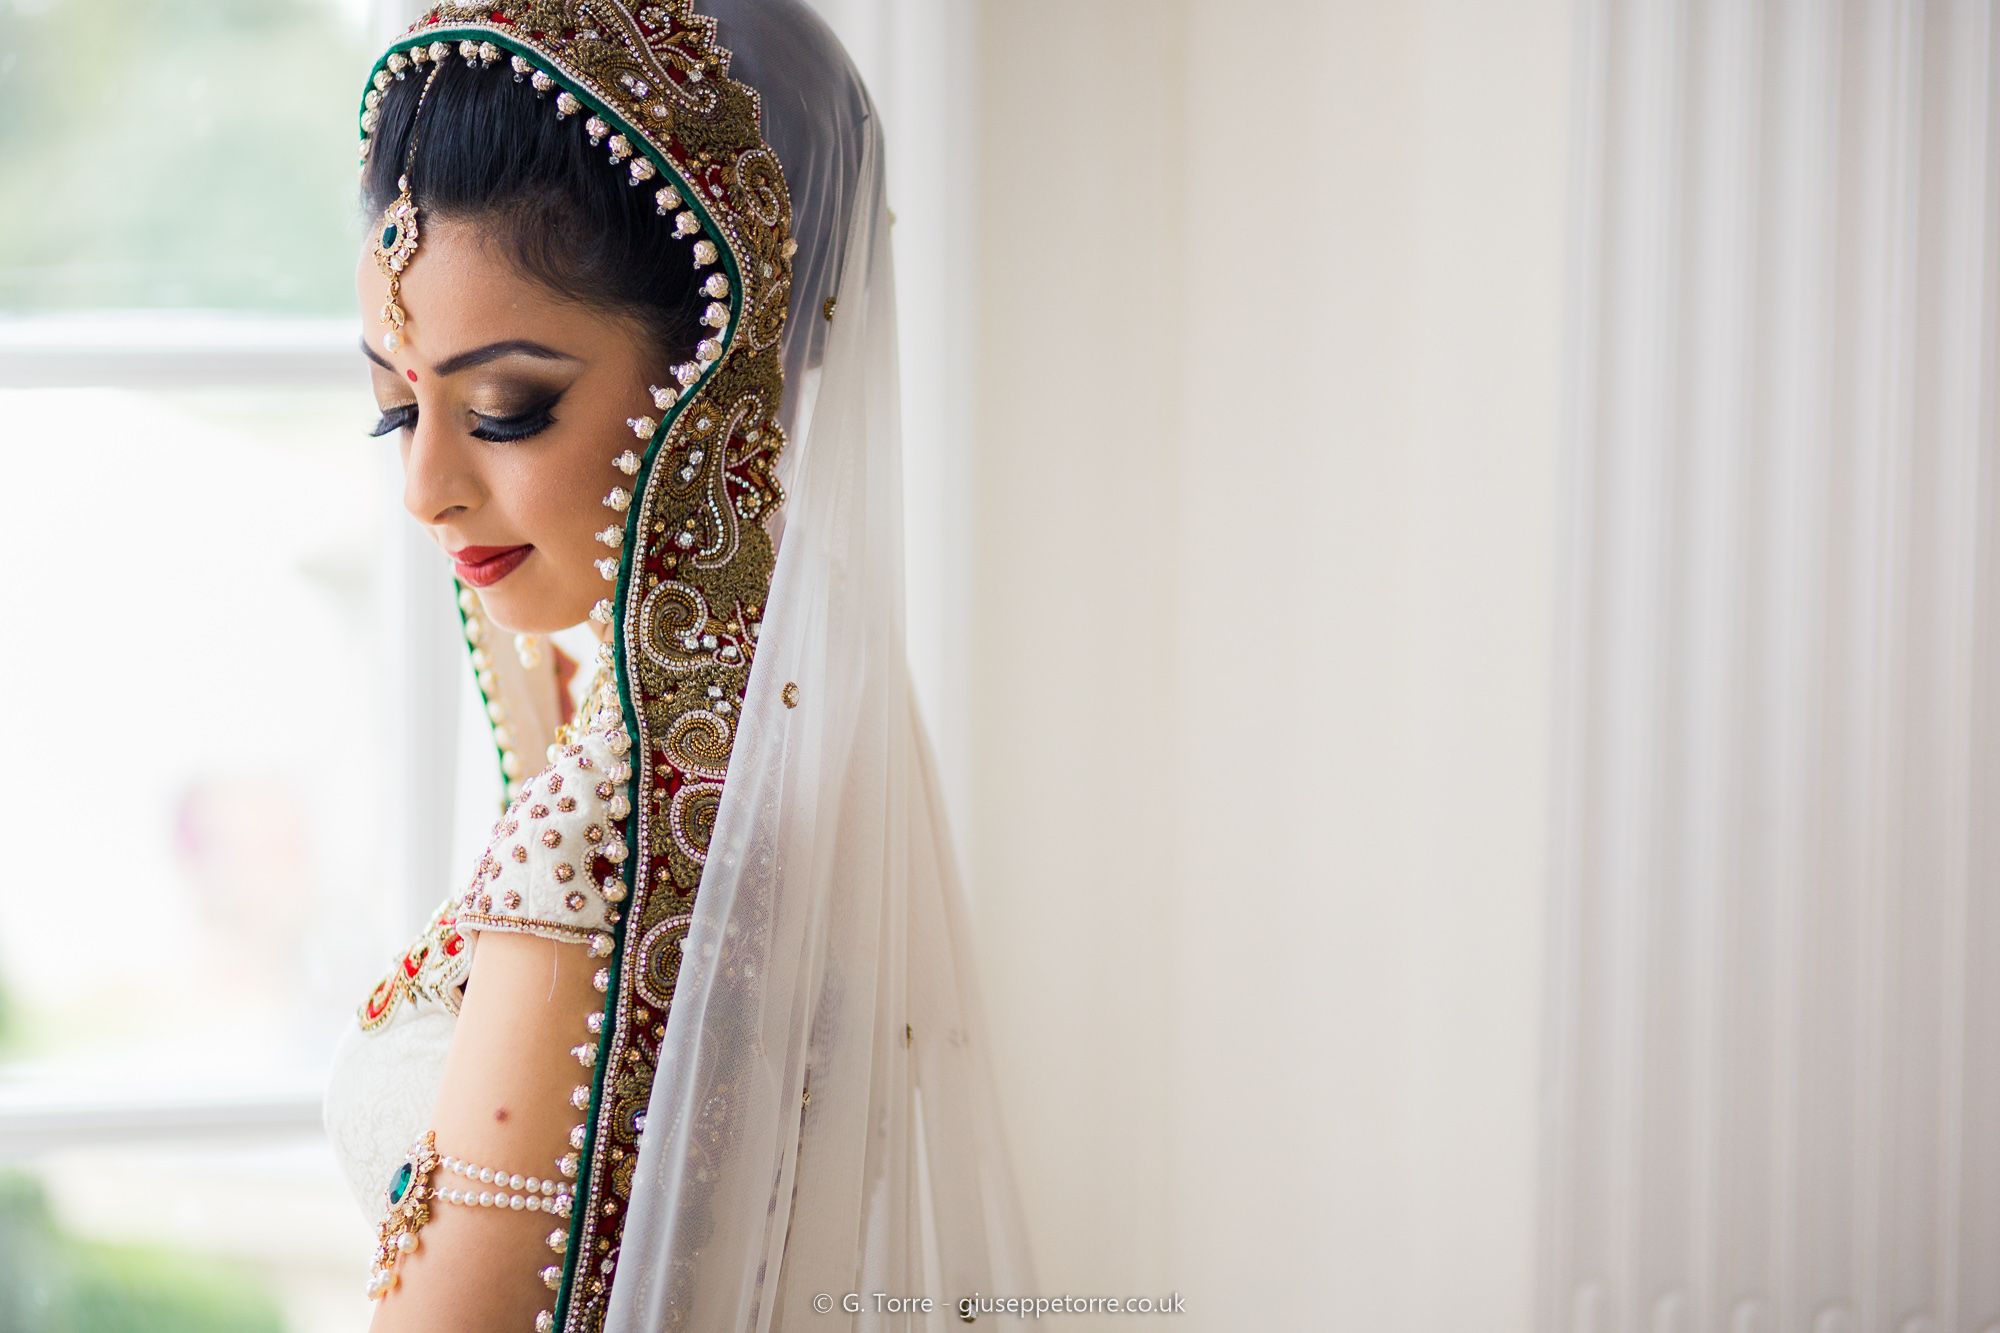 The Indian Beauty...